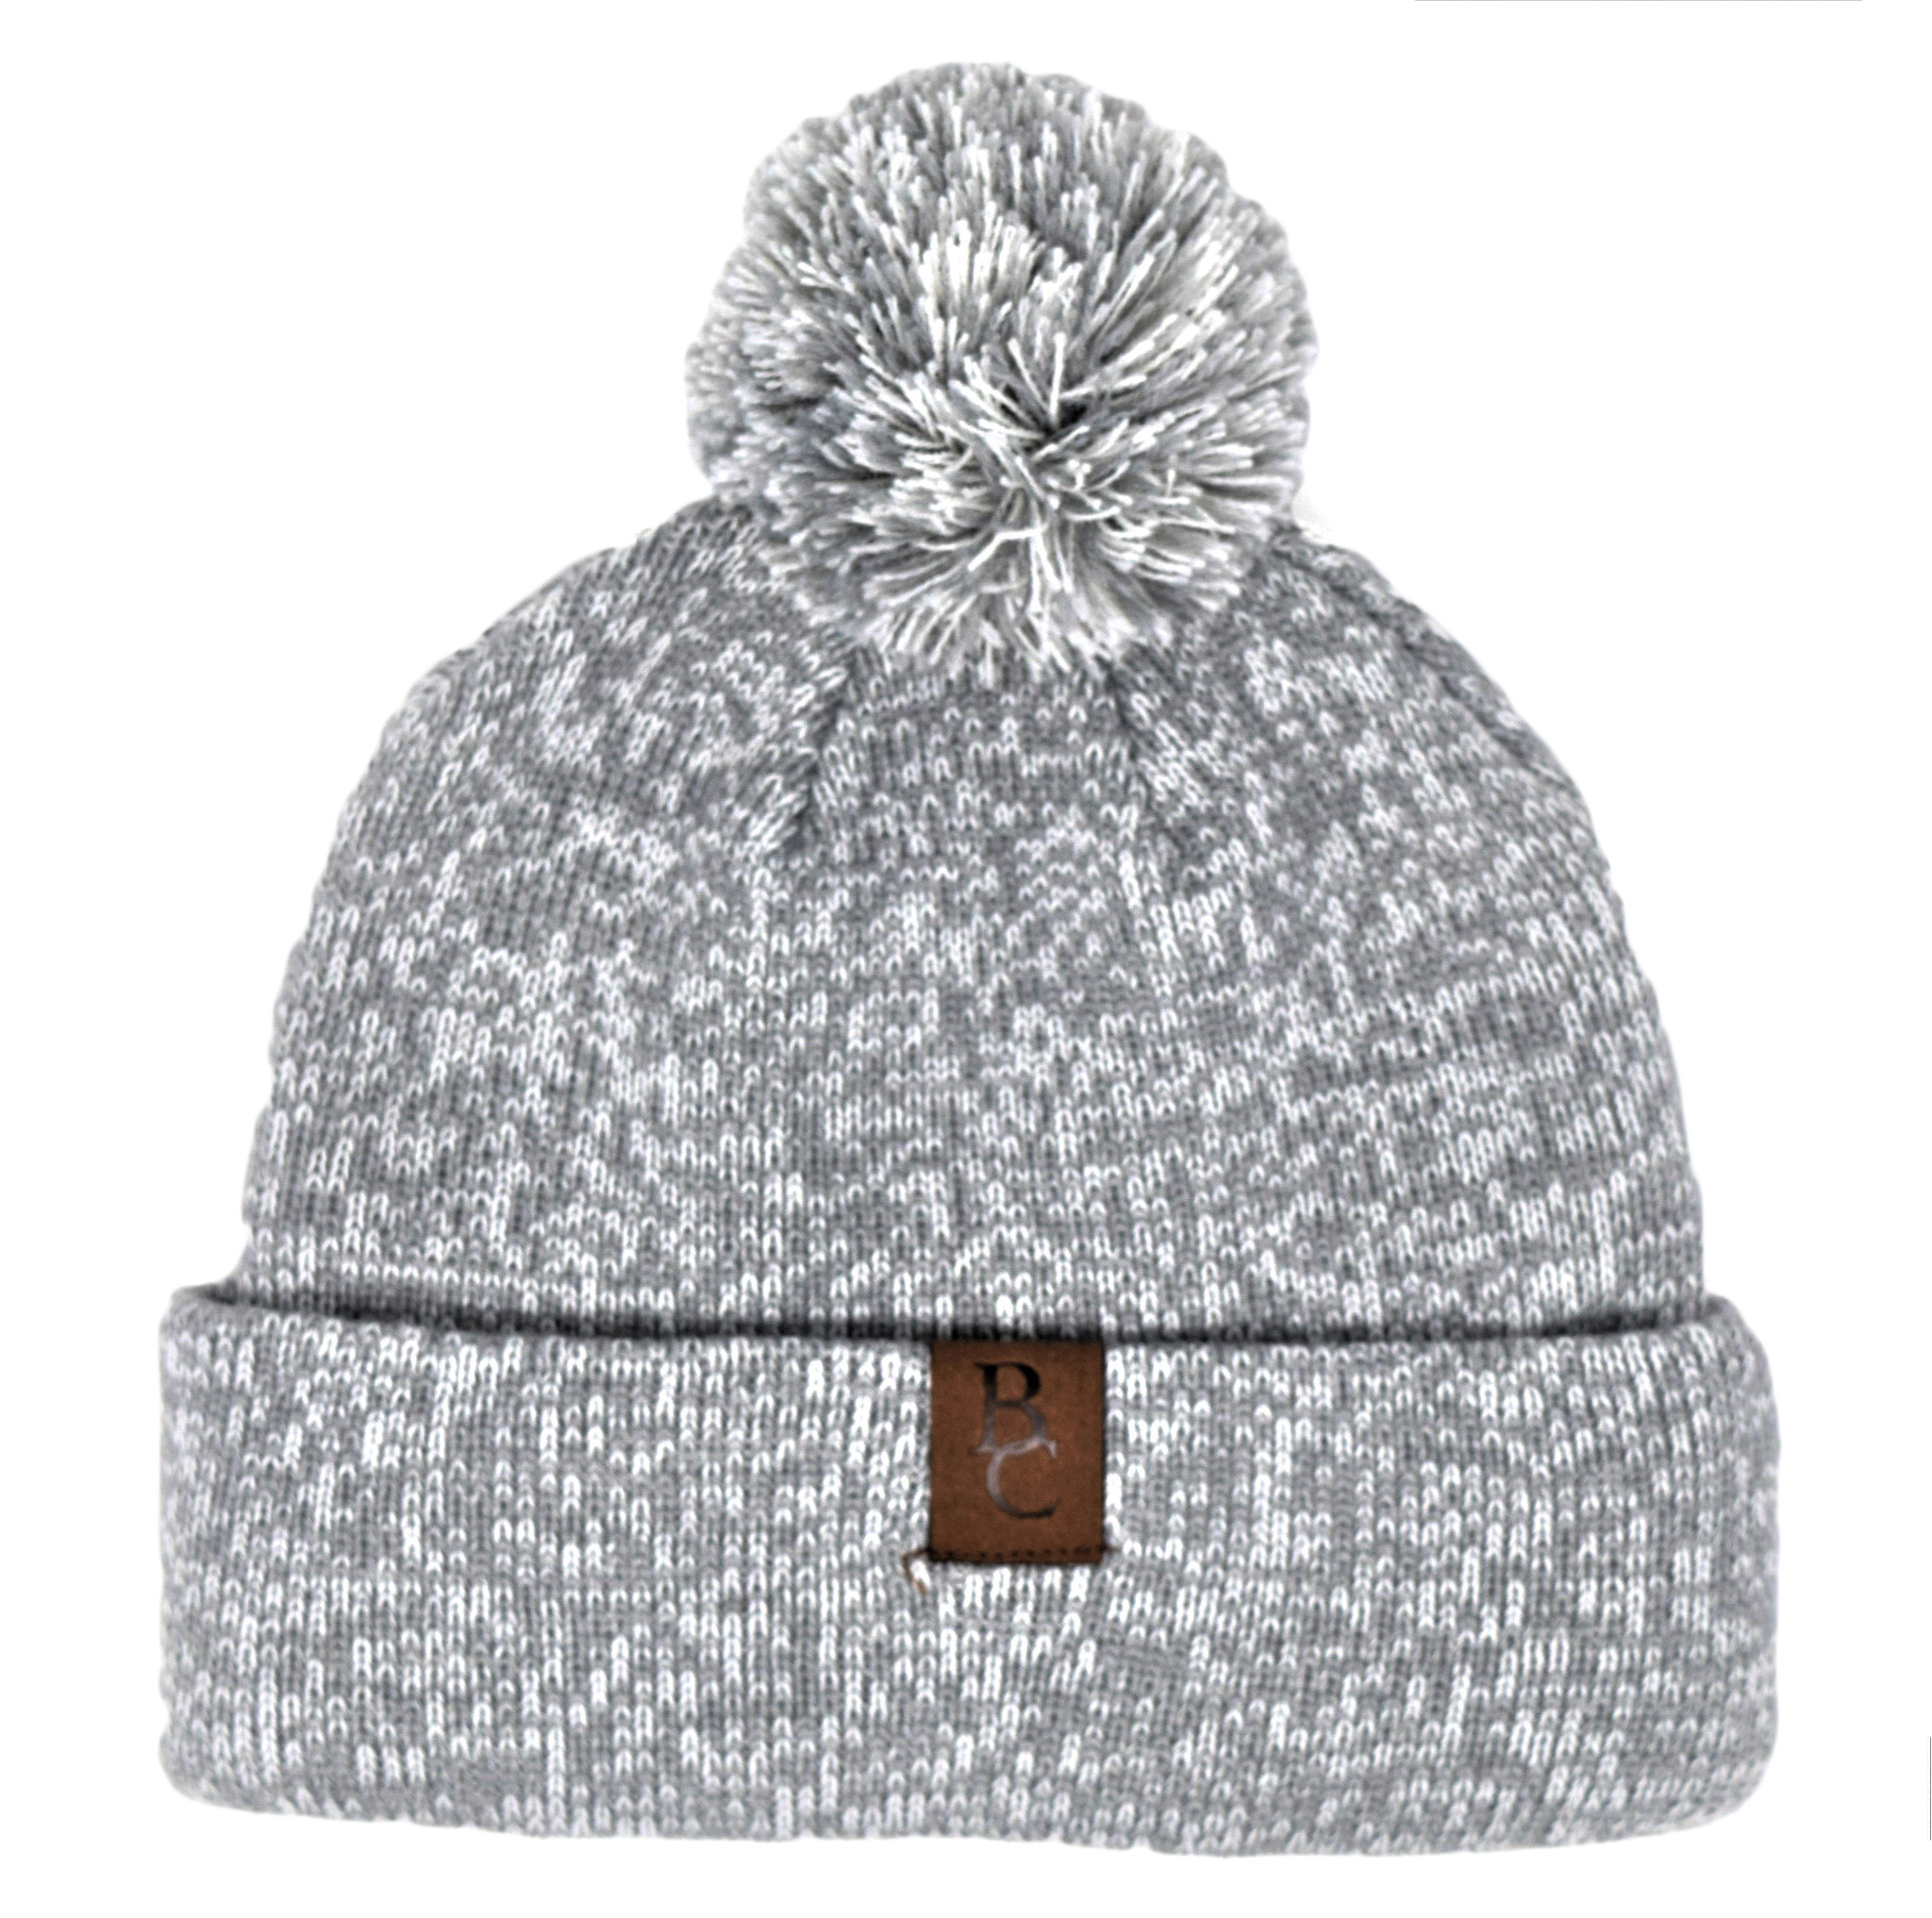 Gray Pom Pom Beanie with Leather BC tag-1